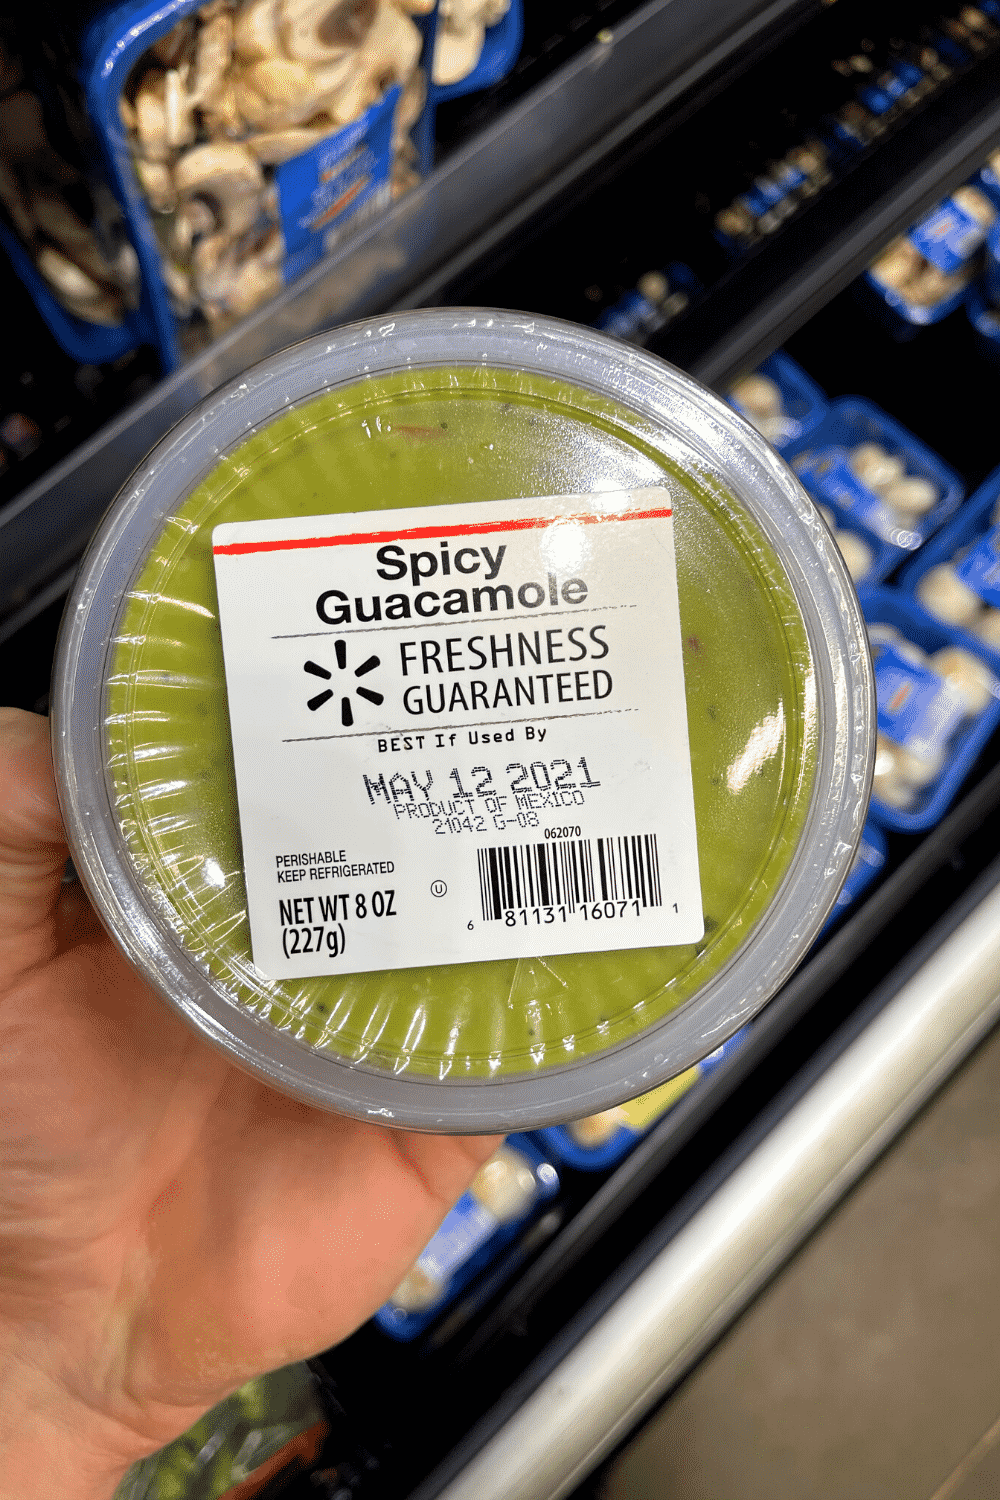 A hand holding a container of guacamole.